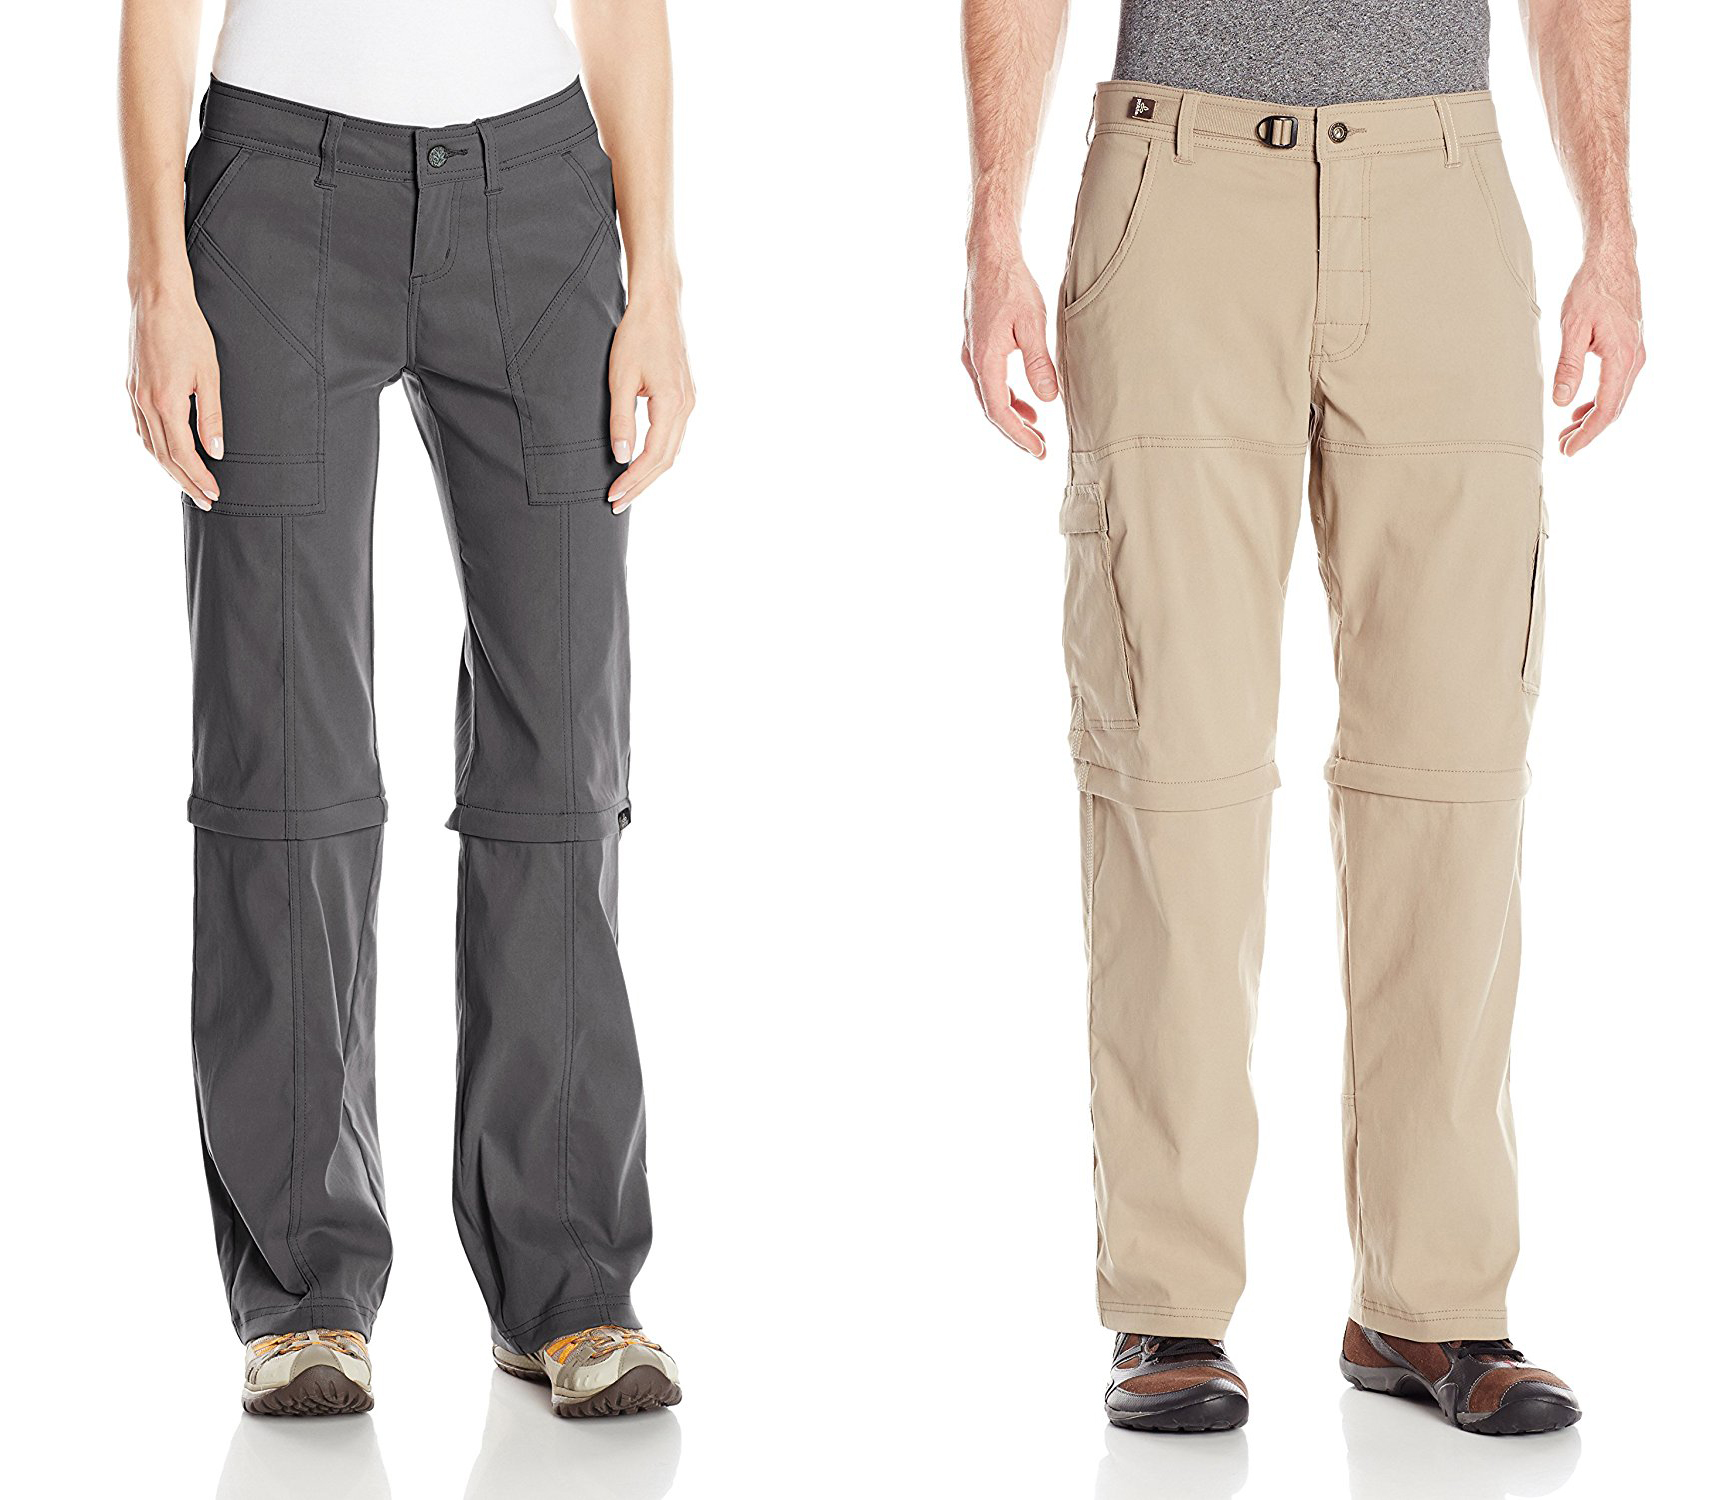 prAna Men's Stretch Zion Convertible (Hiking Pants Men) & prAna Women's Monarch Convertible Reg Inseam (Hiking Pants Women)